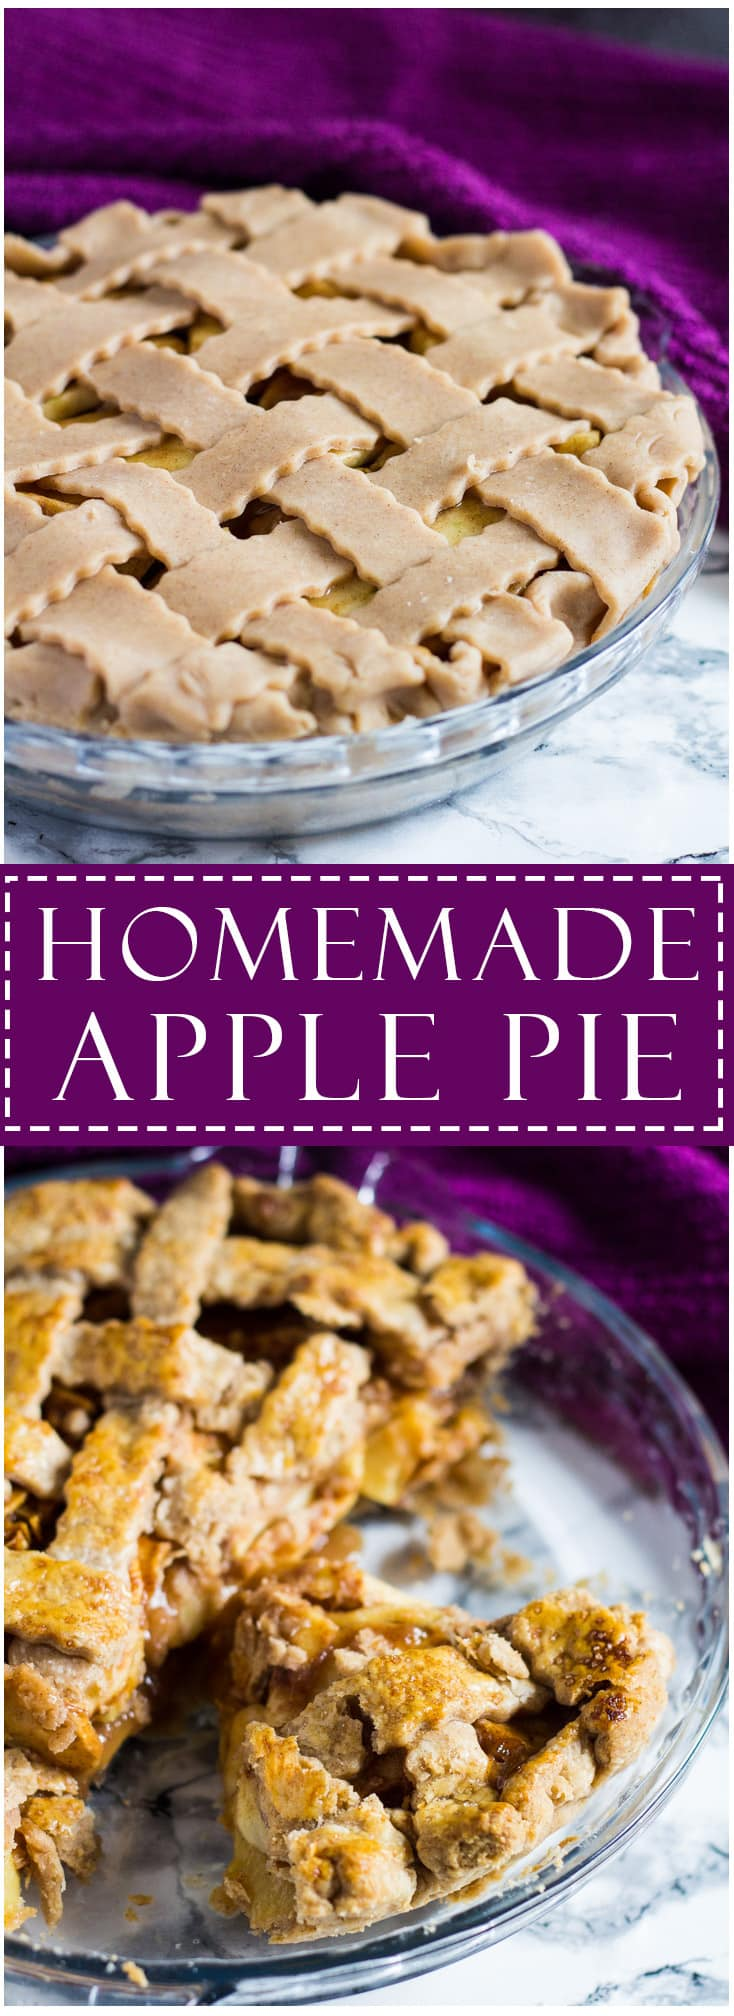 A long image of Homemade Apple Pie with text overlay.